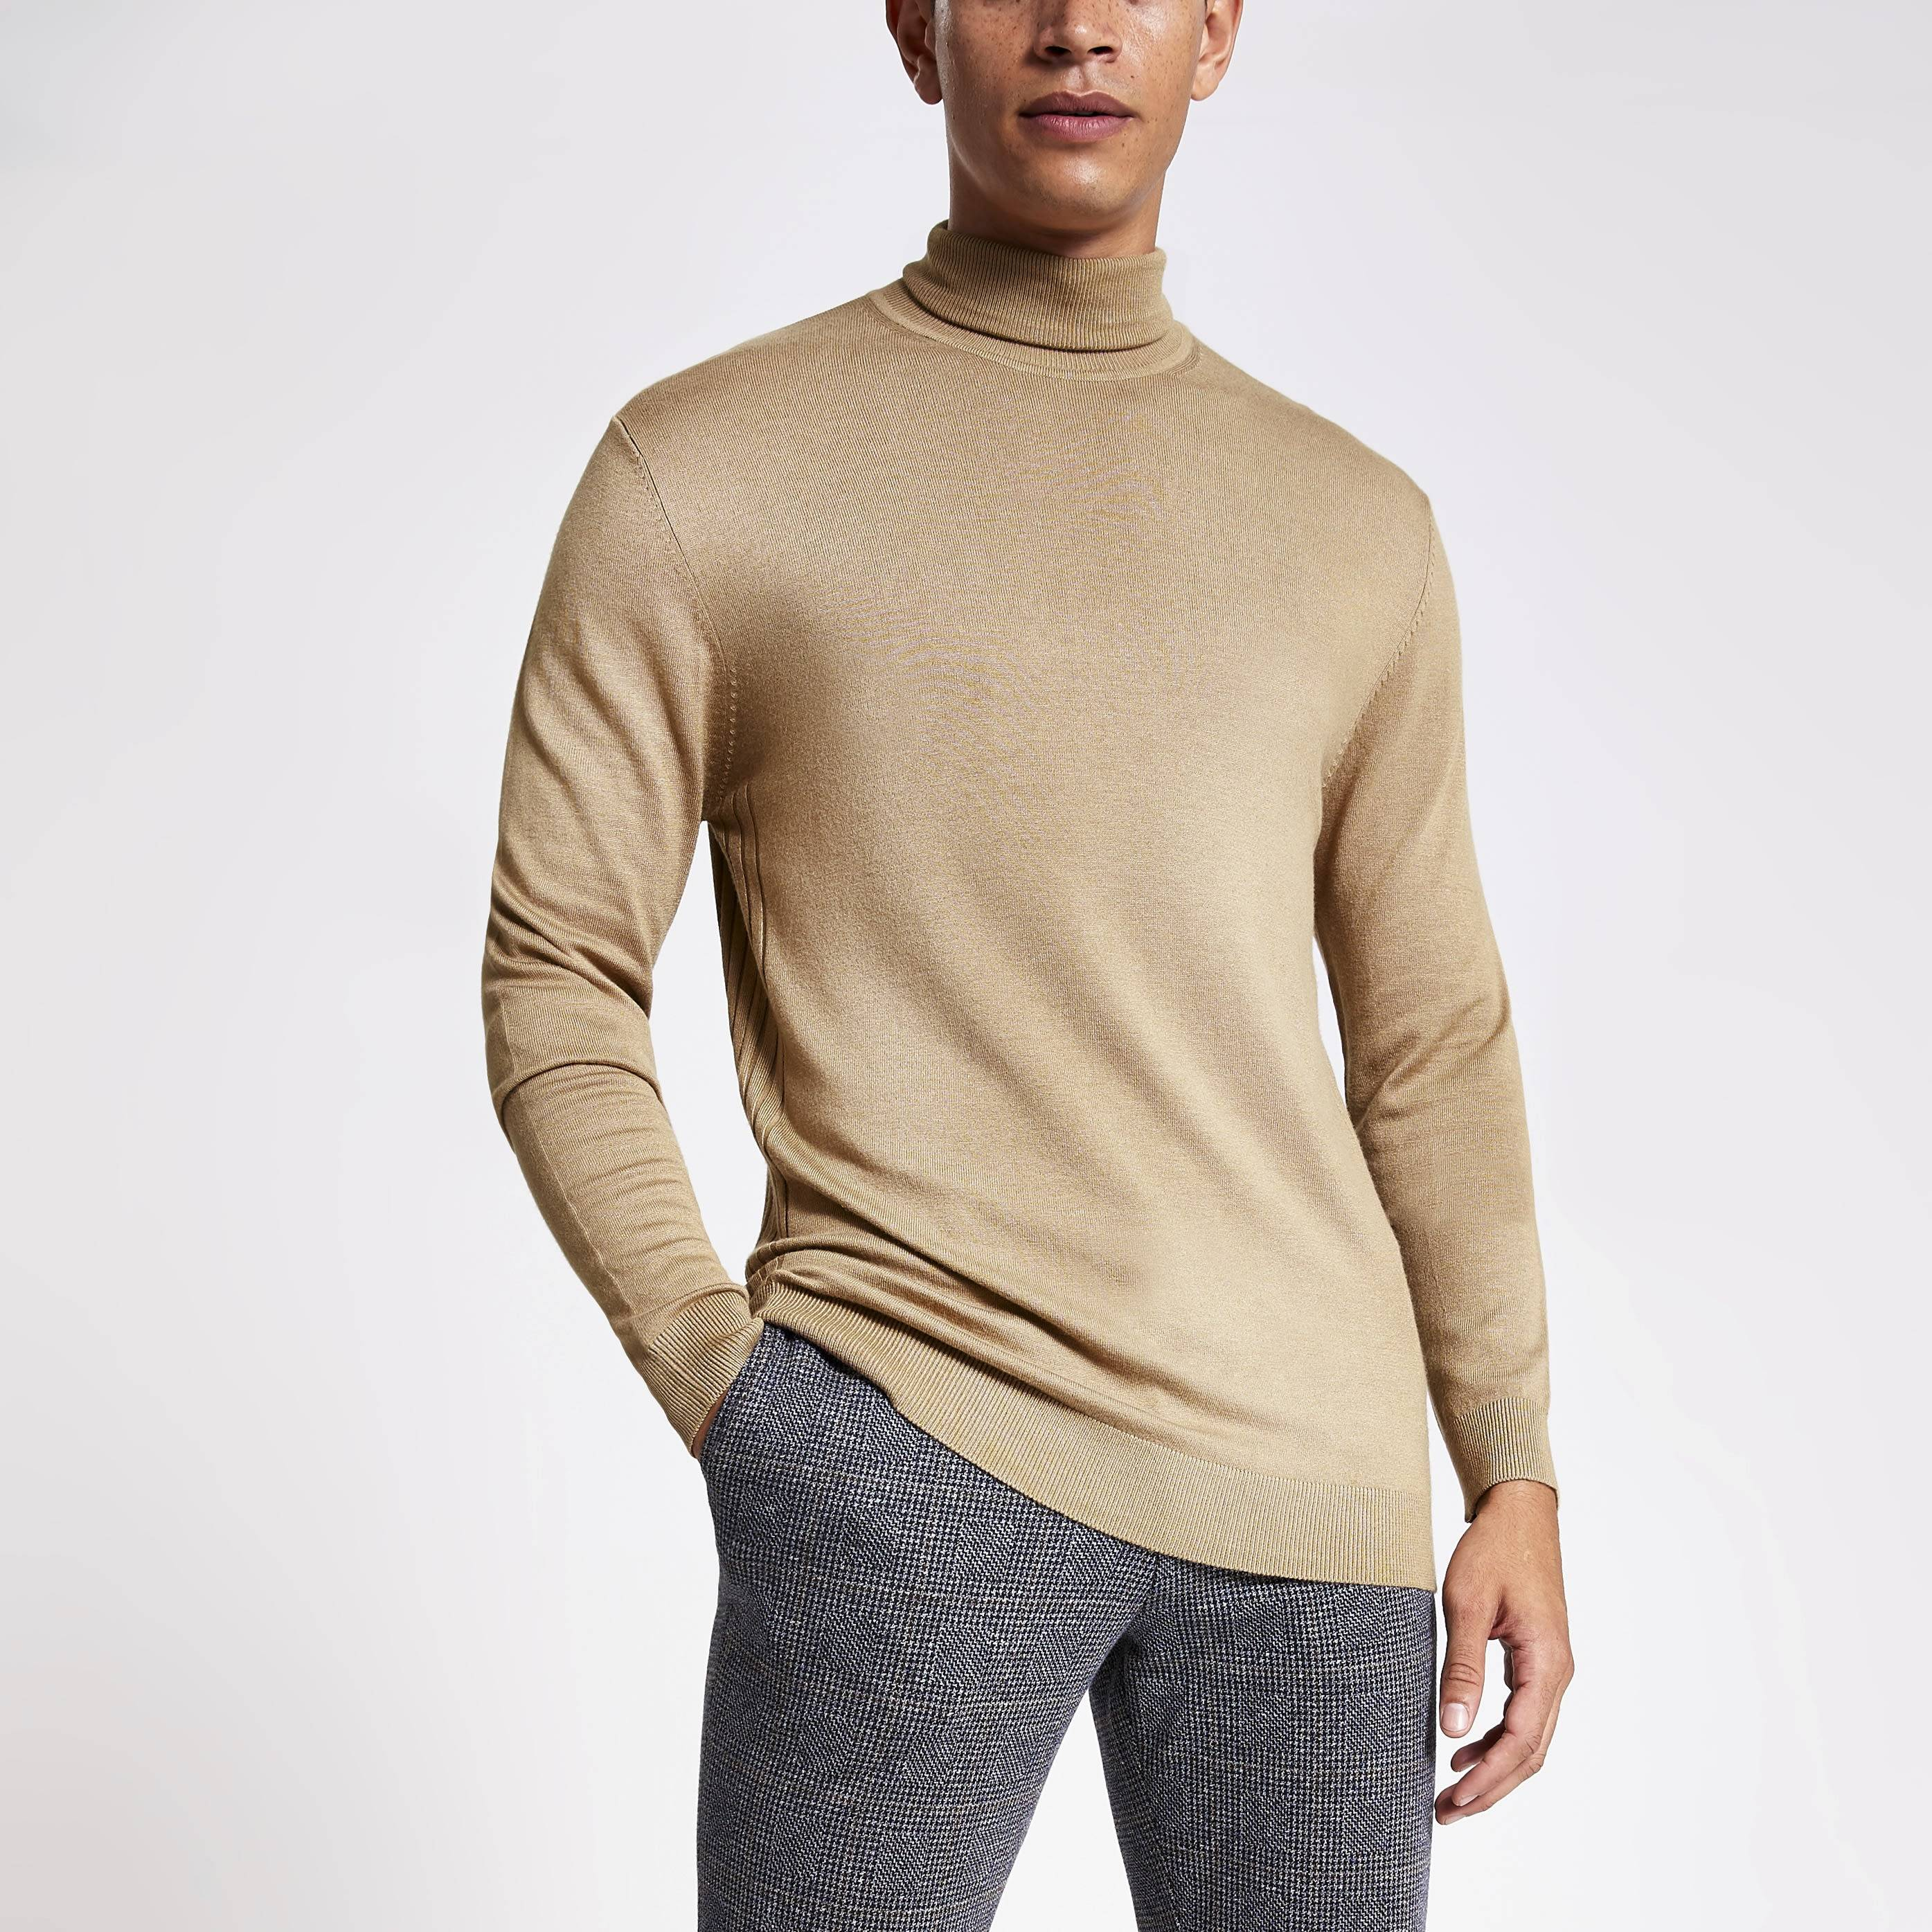 river island Mens Brown slim fit roll neck knitted jumper (XL)